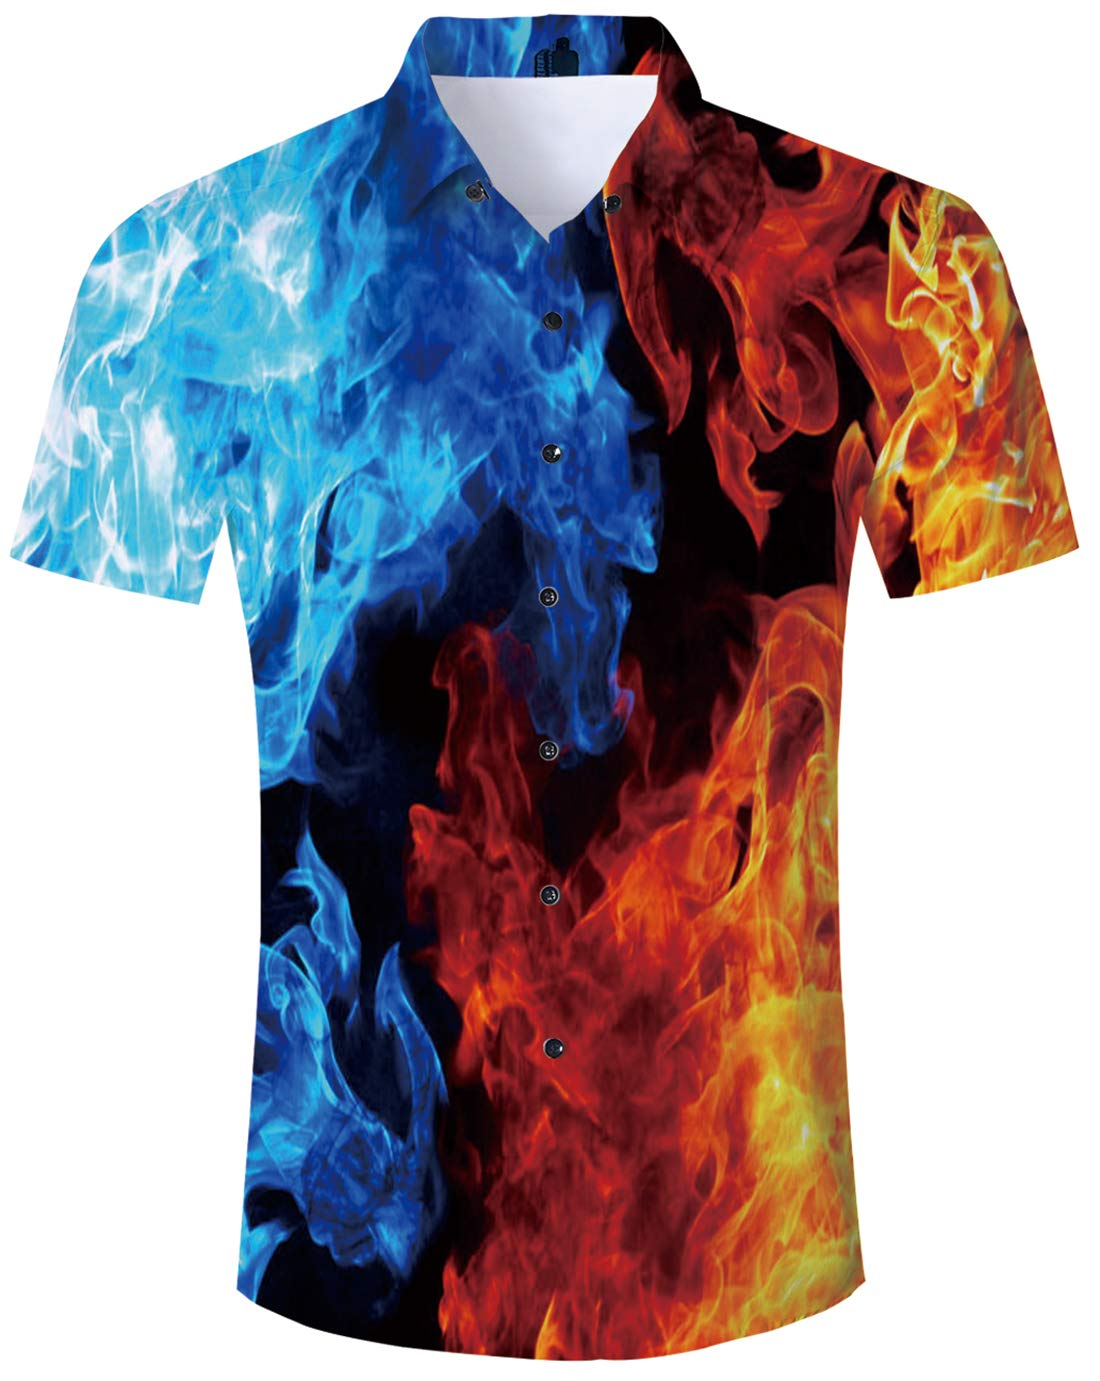 Youth Boys Hawaiian Style Shirts 90s Cute 3D Printed Blue Ice and Red Fire Aloha Luau Clothes Cool Tropical Dress Casual Button Down Short Sleeve Apparel for Birthday Party